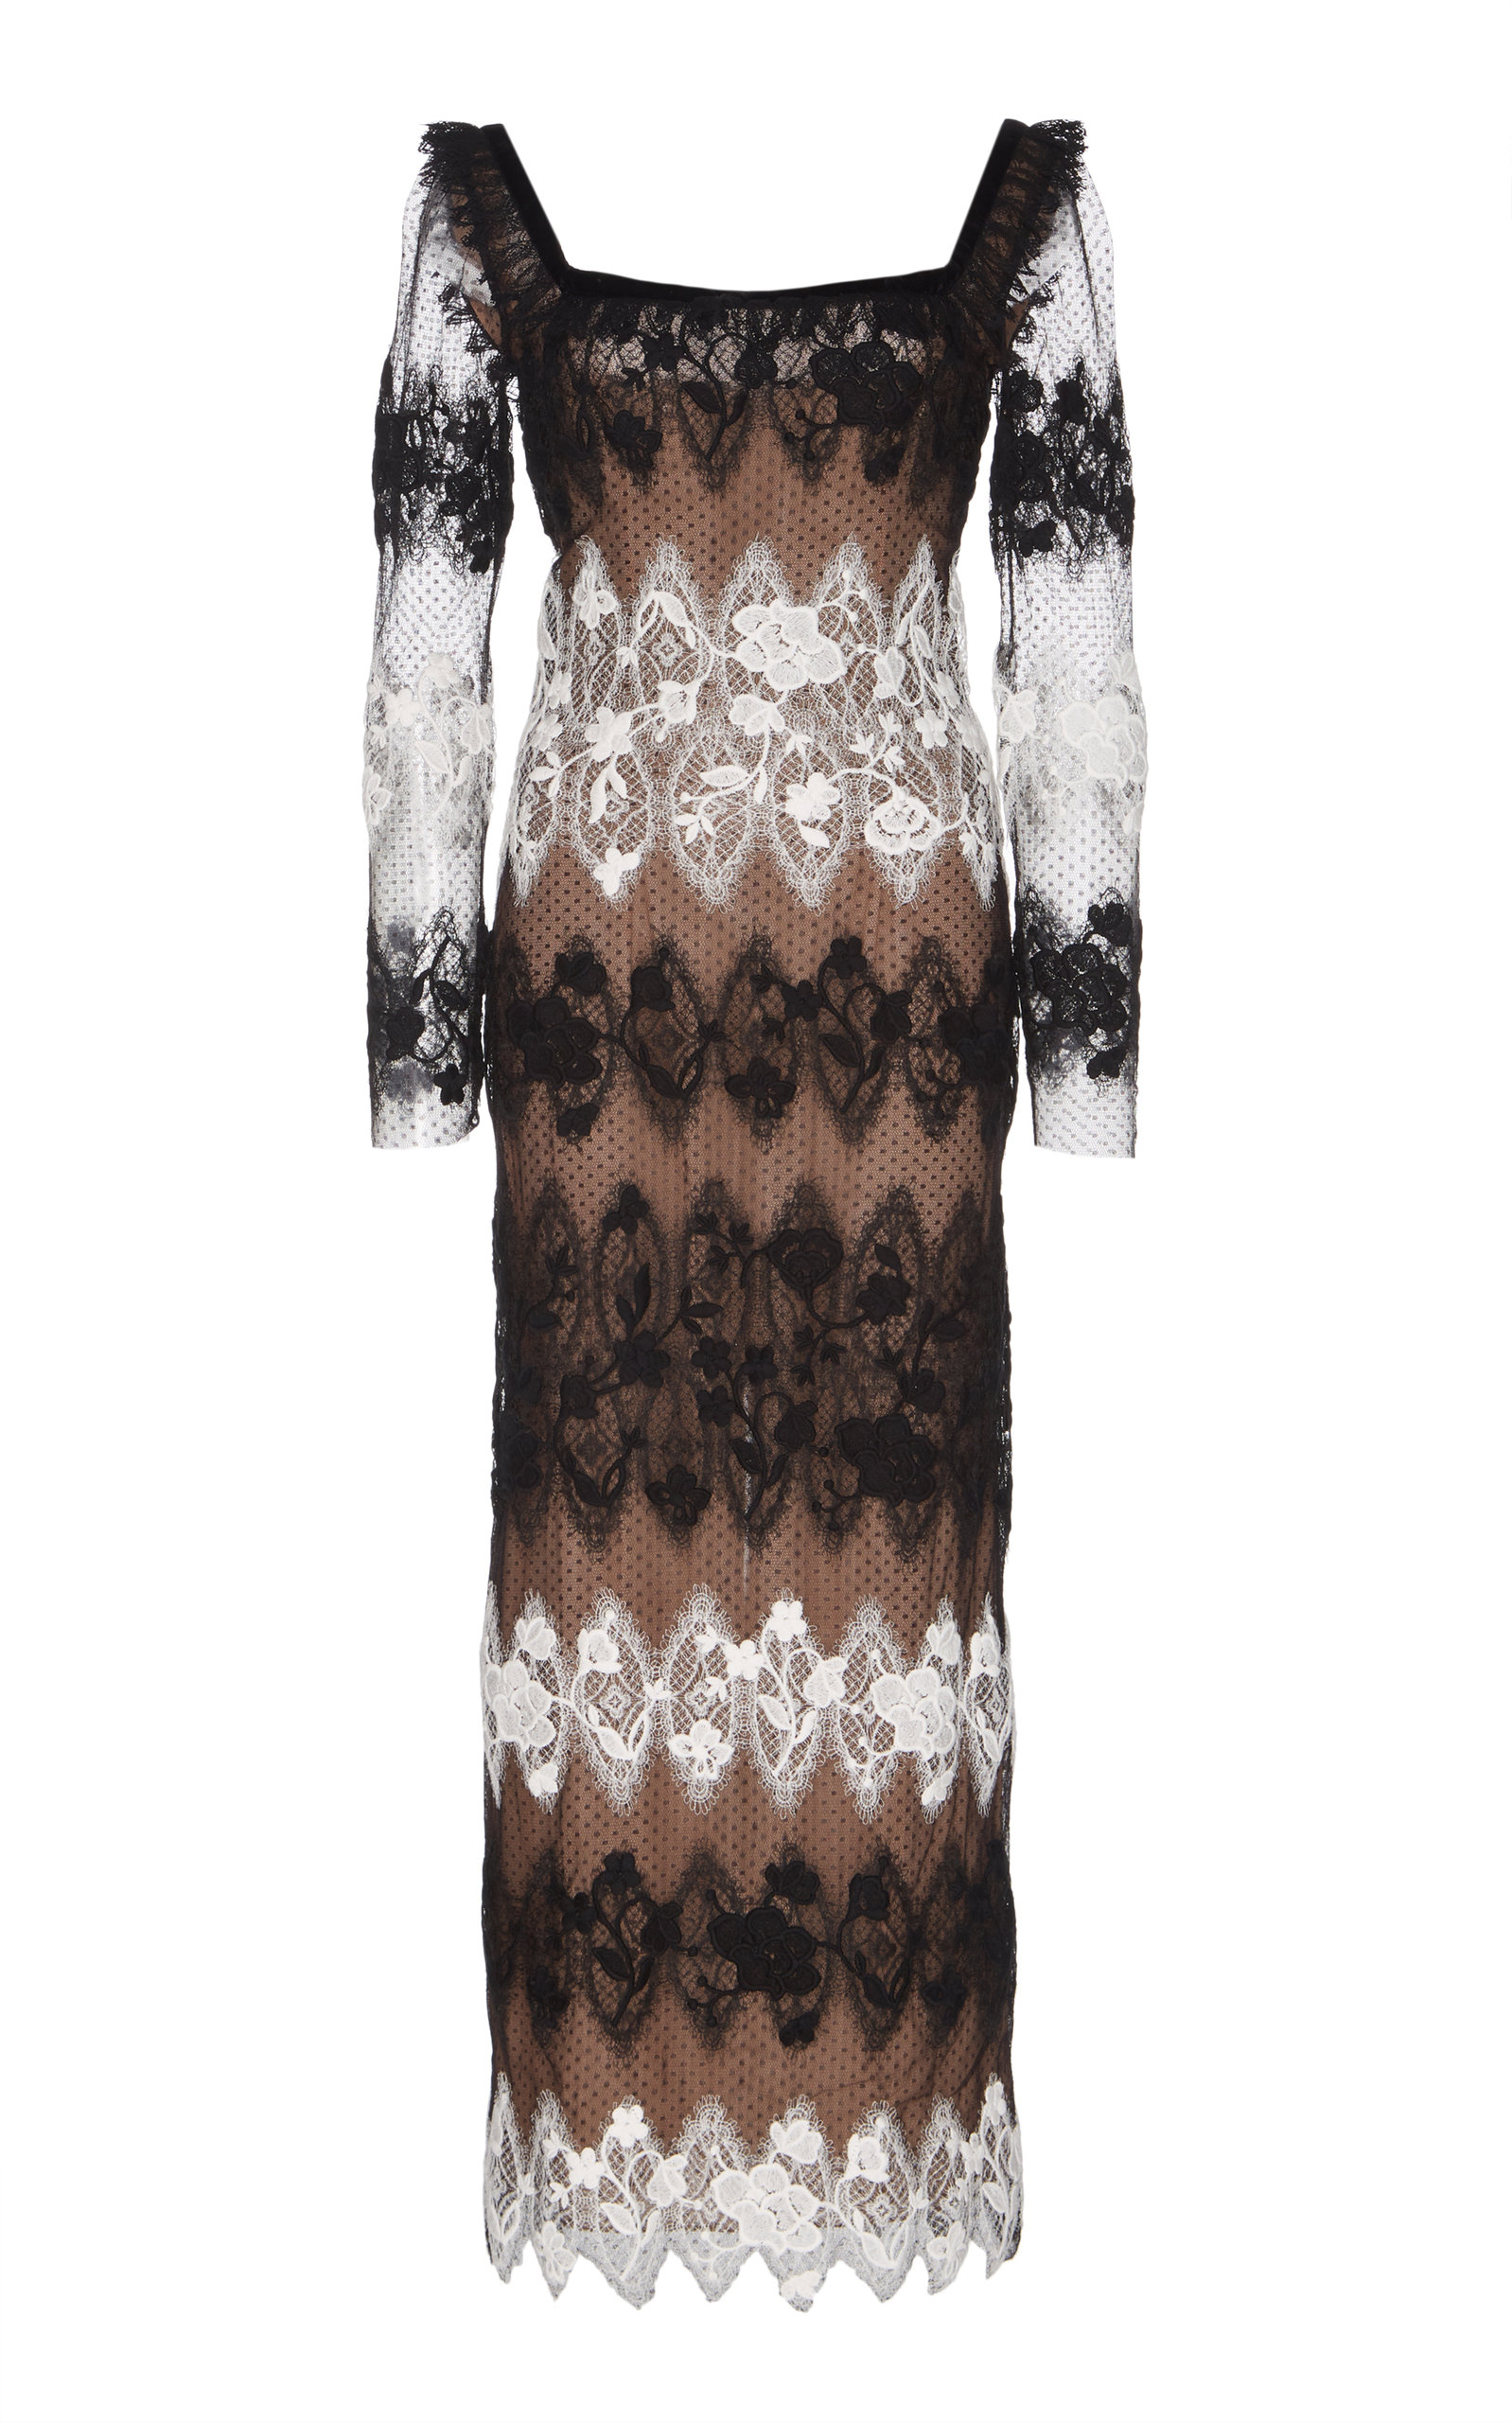 SANDRA MANSOUR Perle Lace Embroidered Midi Dress in Black/White